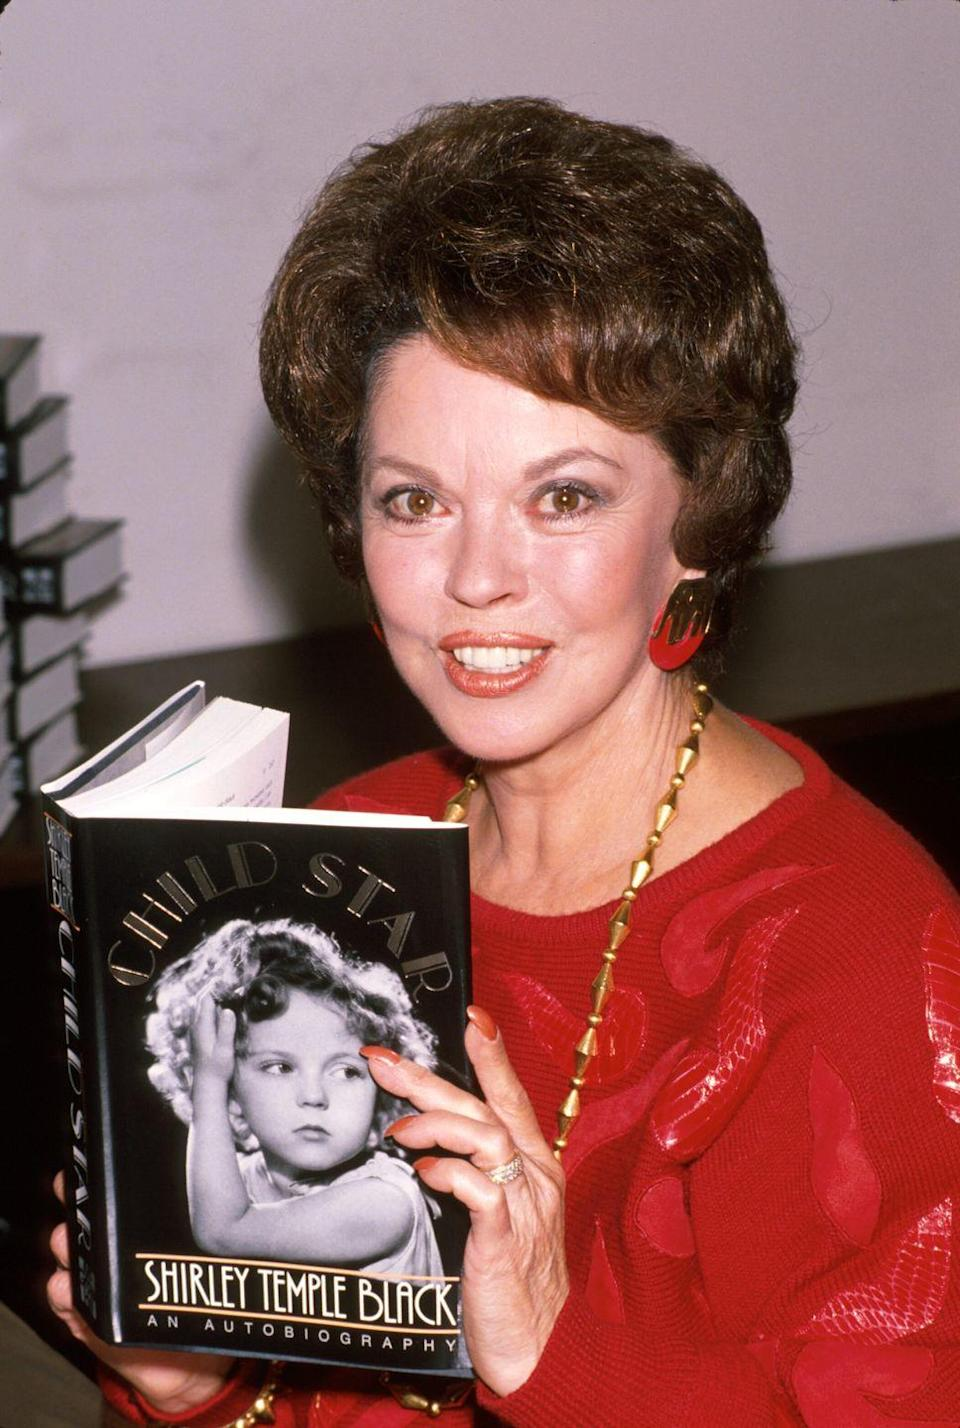 """<p>In 1988, the former child star released her autobiography, <a href=""""https://www.amazon.com/Child-Star-Shirley-Temple-Black/dp/0070055327?tag=syn-yahoo-20&ascsubtag=%5Bartid%7C10063.g.35392518%5Bsrc%7Cyahoo-us"""" rel=""""nofollow noopener"""" target=""""_blank"""" data-ylk=""""slk:Child Star: An Autobiography"""" class=""""link rapid-noclick-resp""""><em>Child Star: An Autobiography</em></a>. In it she detailed her time as the number one box office star in America, her relationship with her parents (<a href=""""https://www.cnn.com/2014/02/11/showbiz/movies/shirley-temple-child-star-appreciation/index.html"""" rel=""""nofollow noopener"""" target=""""_blank"""" data-ylk=""""slk:they &quot;showered her&quot; in love"""" class=""""link rapid-noclick-resp"""">they """"showered her"""" in love</a>), and her decision to retire at the age of 22. </p>"""